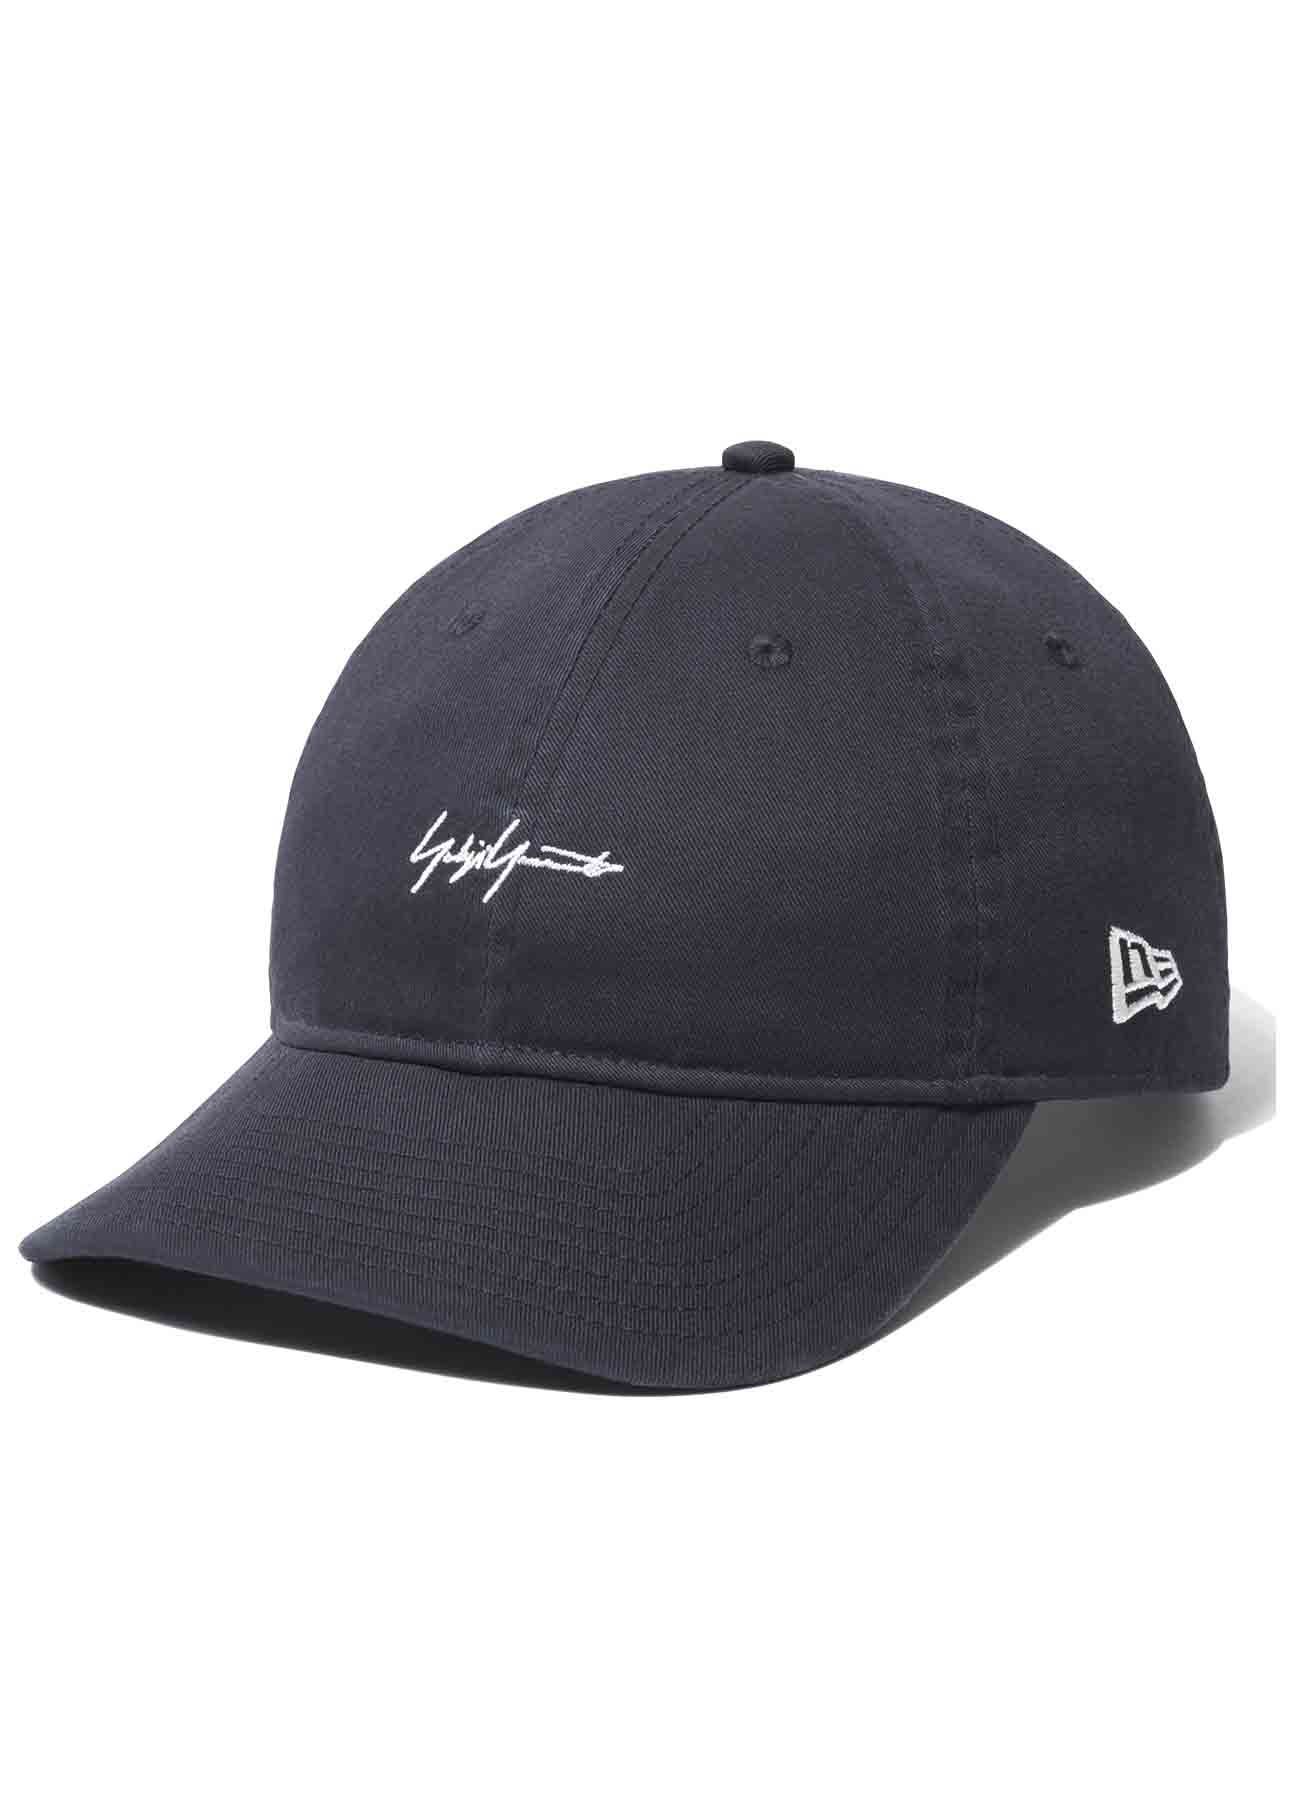 Yohji Yamamoto × New Era 9THIRTY Cotton Packable Logo Navy